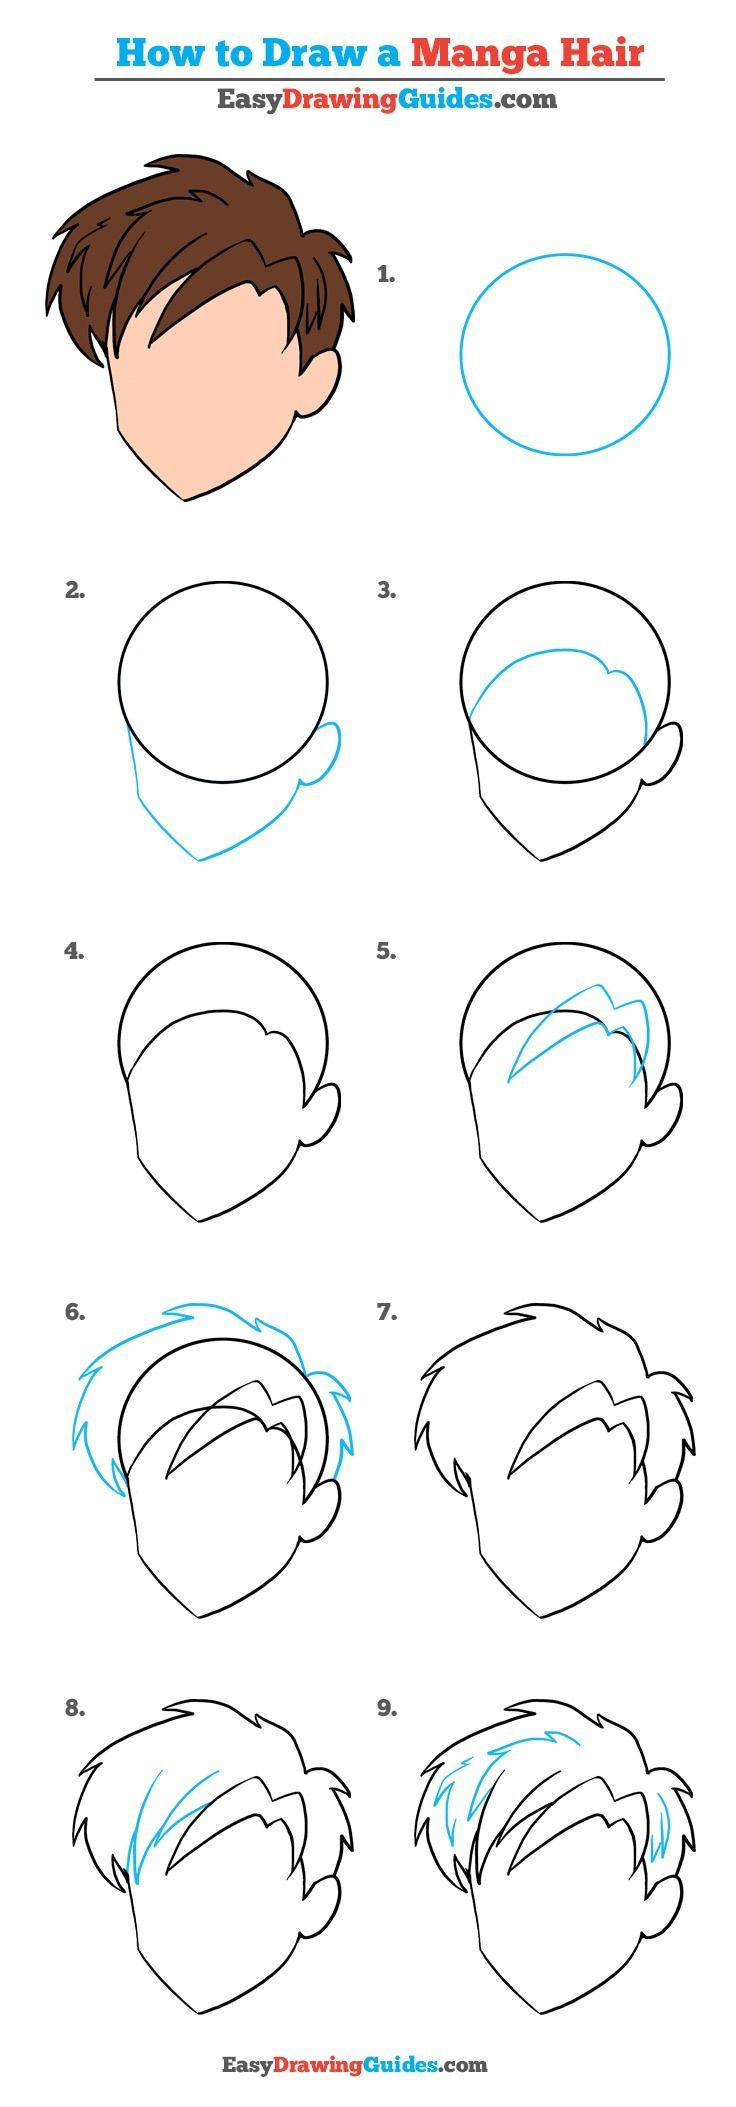 How To Draw Manga Hair Really Easy Drawing Tutorial Drawing Tutorial Easy Drawing Hair Tutorial Drawing For Beginners